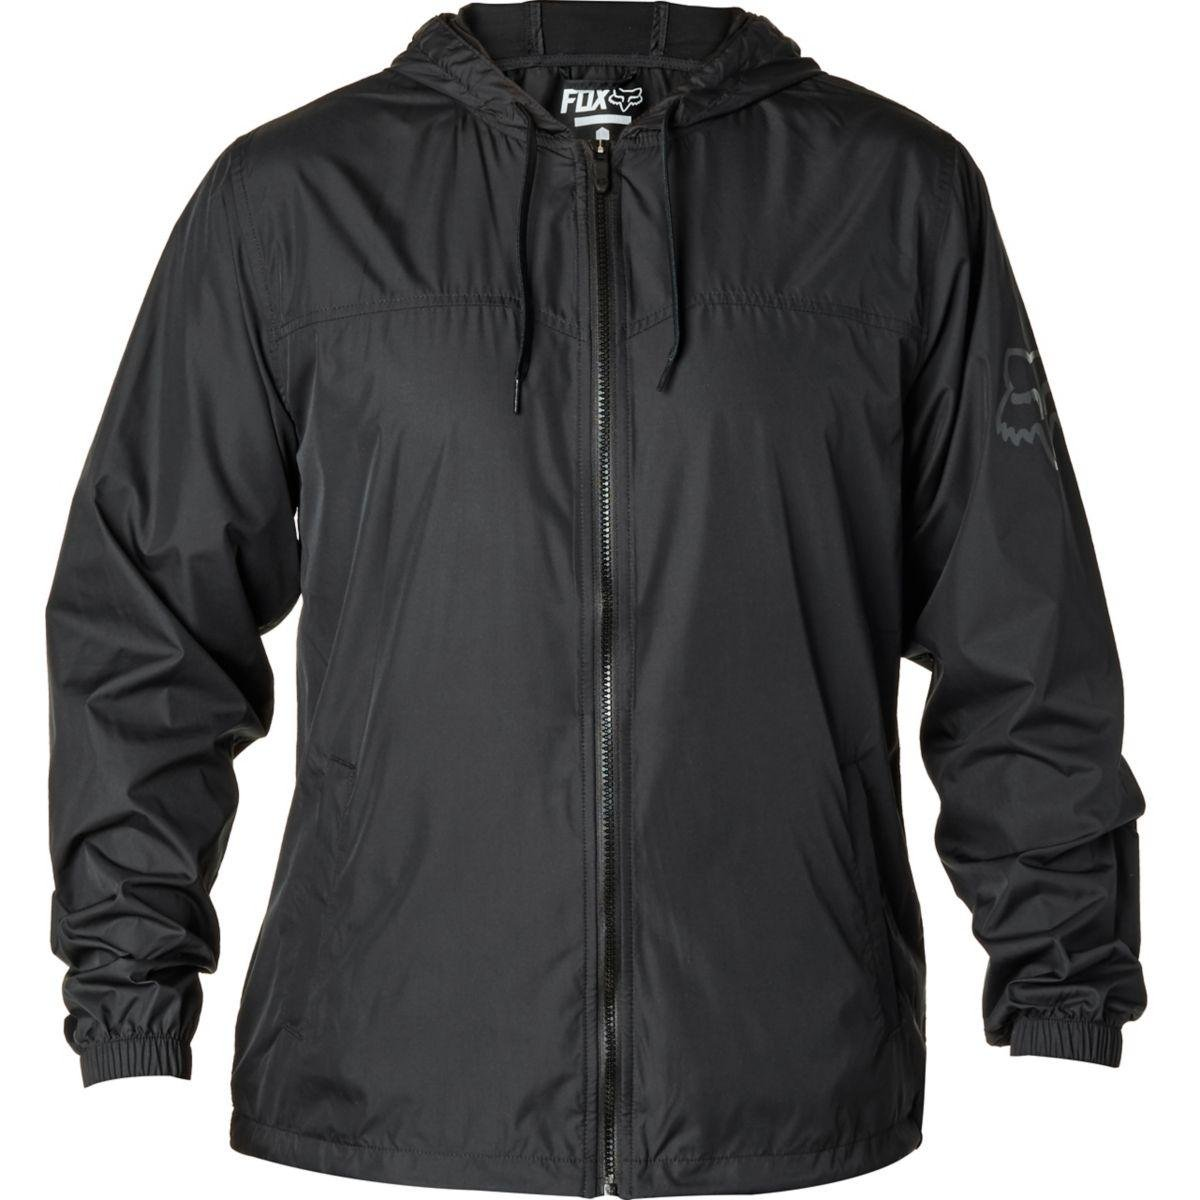 Fox Mens Perris Windbreaker Jacket Fox Racing